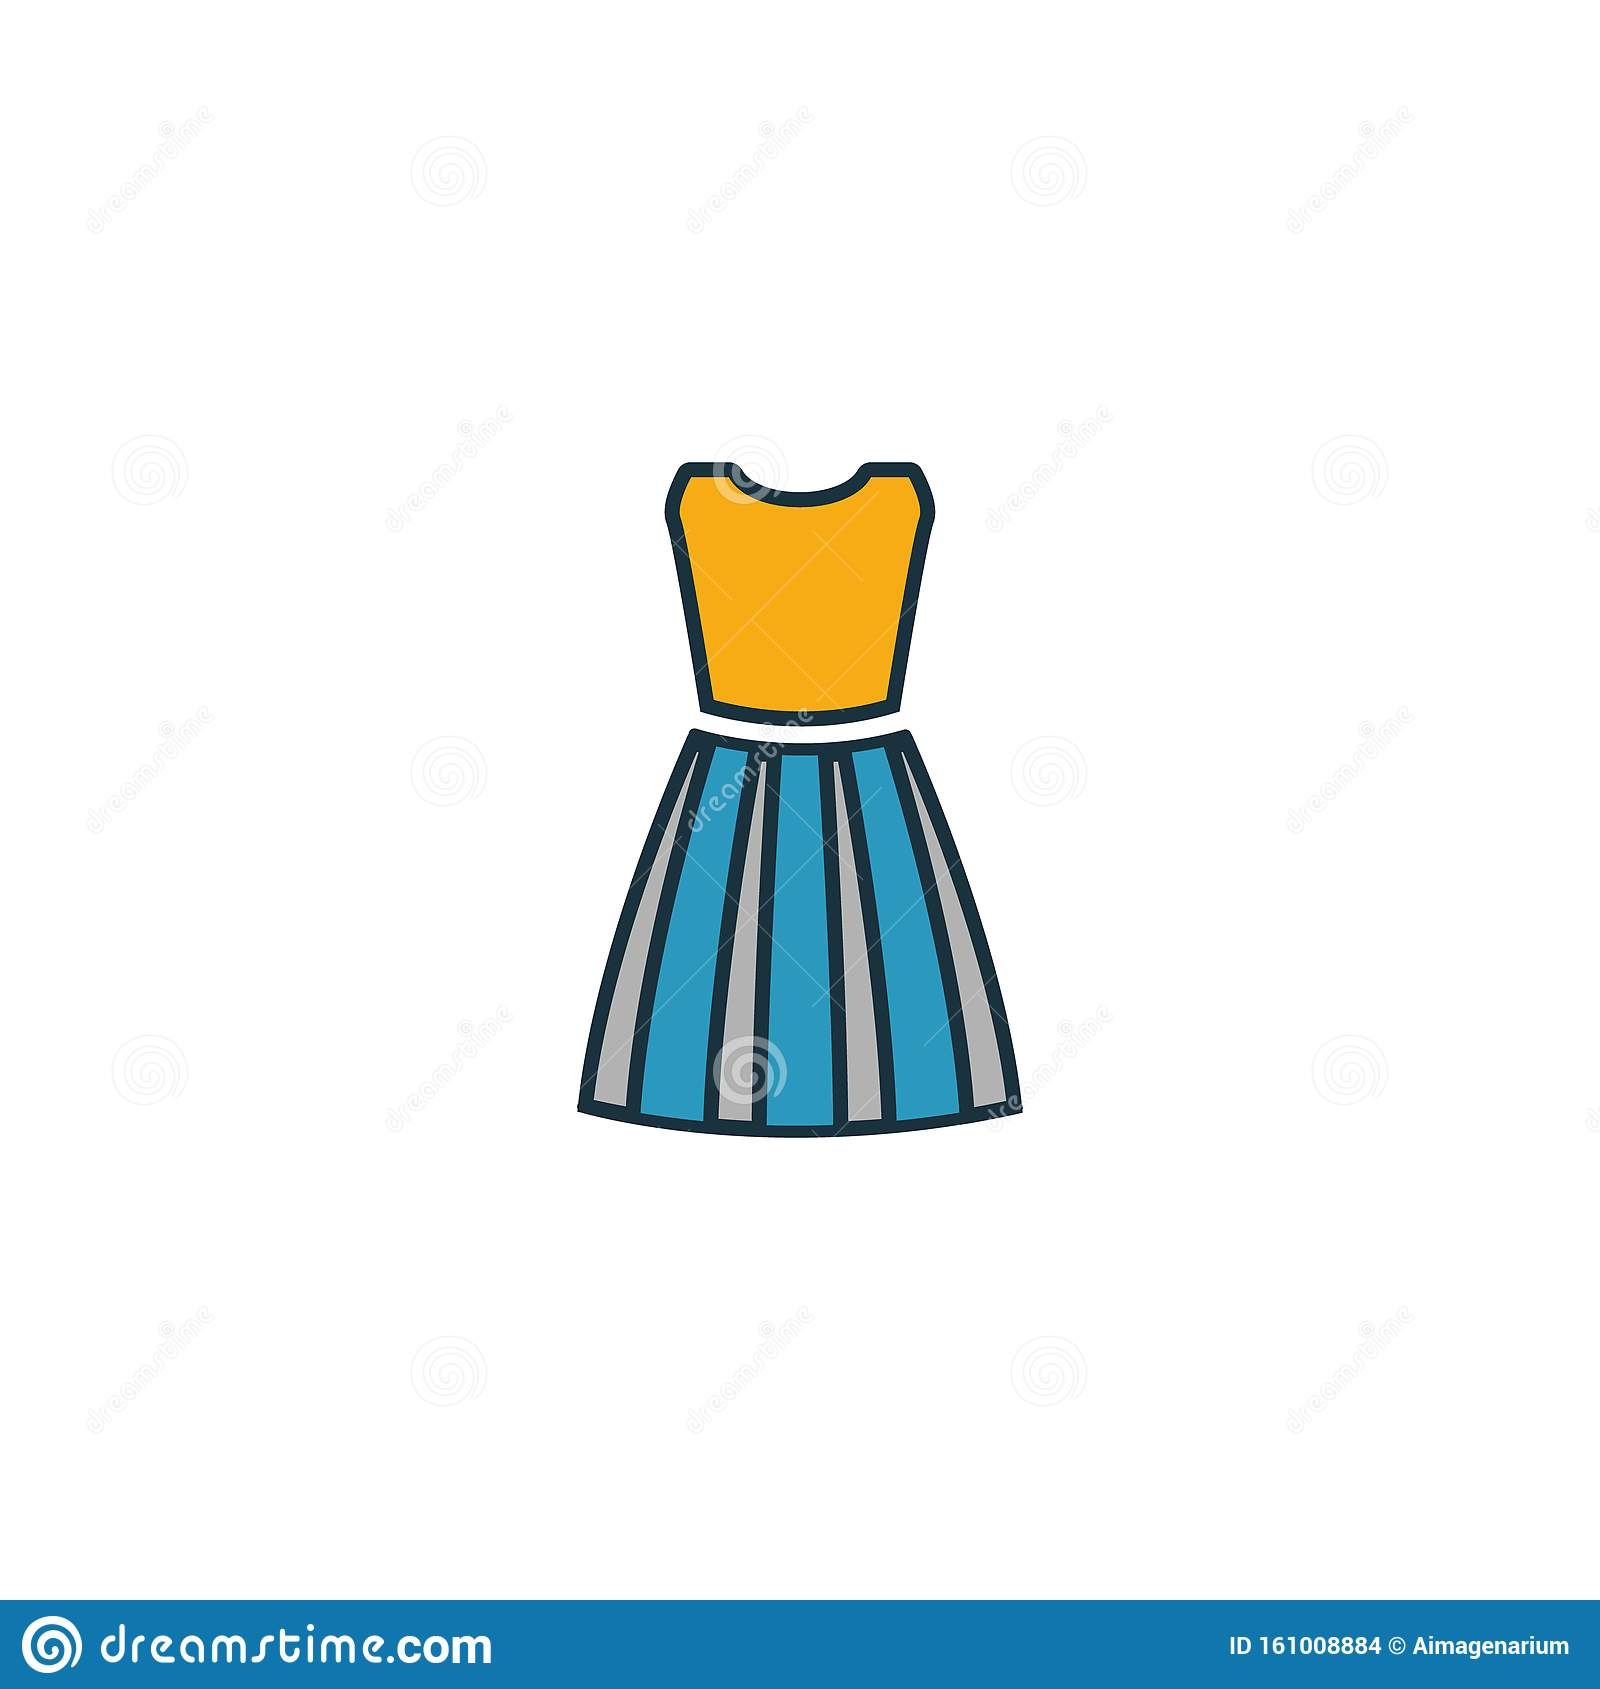 Dress Female Icon Pixel Perfect Using For Web Design Apps Software Print Dress Female Icon Design From Clothes Collection Stock Illustration Illustration Of Girl Accessories 161008884